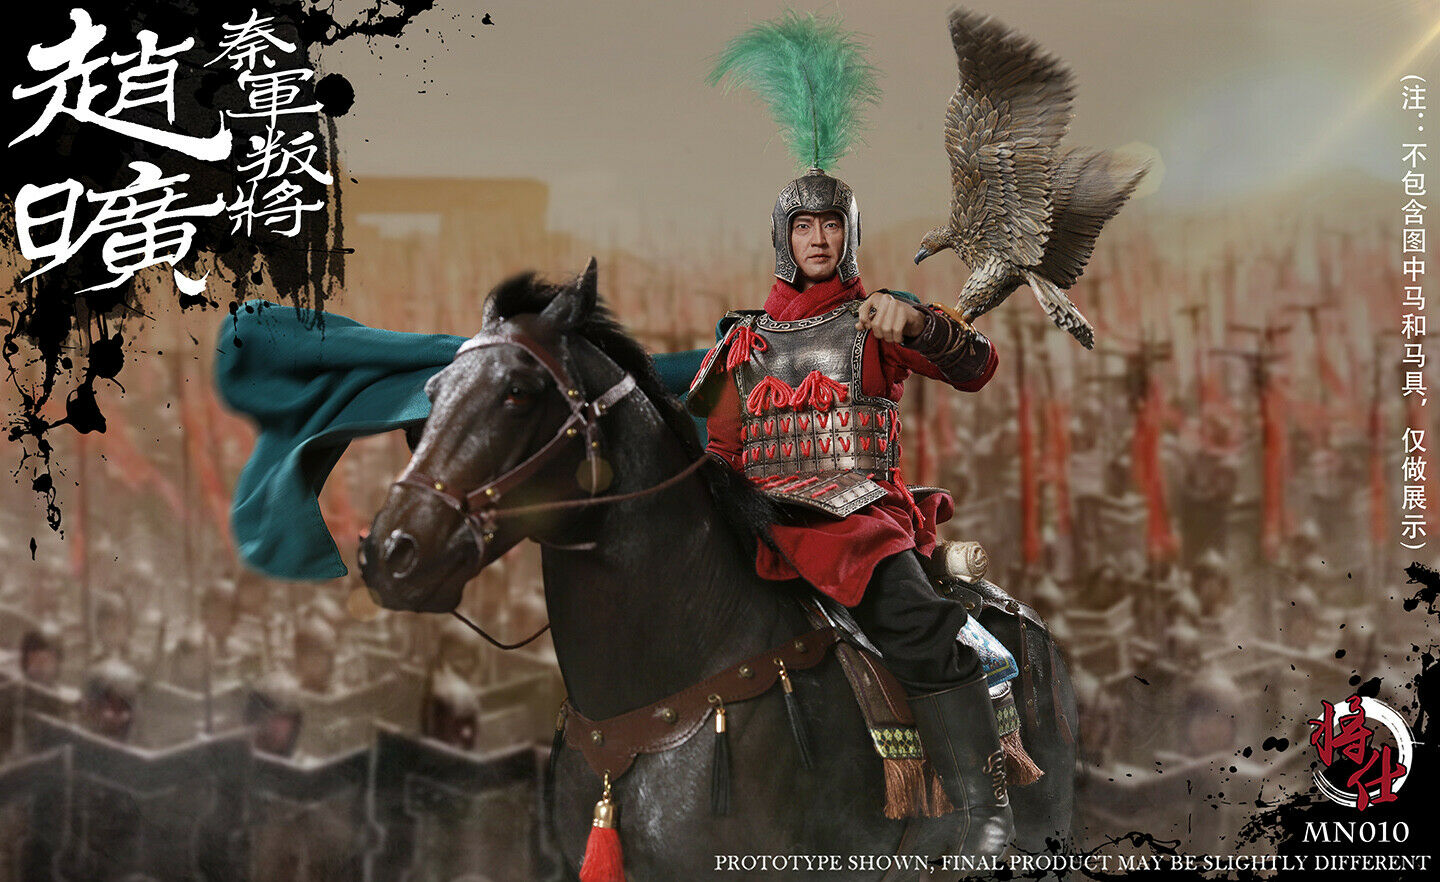 JSModel MN010 1 6th Warring States series Qin Qin Qin Army Defecting-Zhao Kuang Figure 0ff0cc